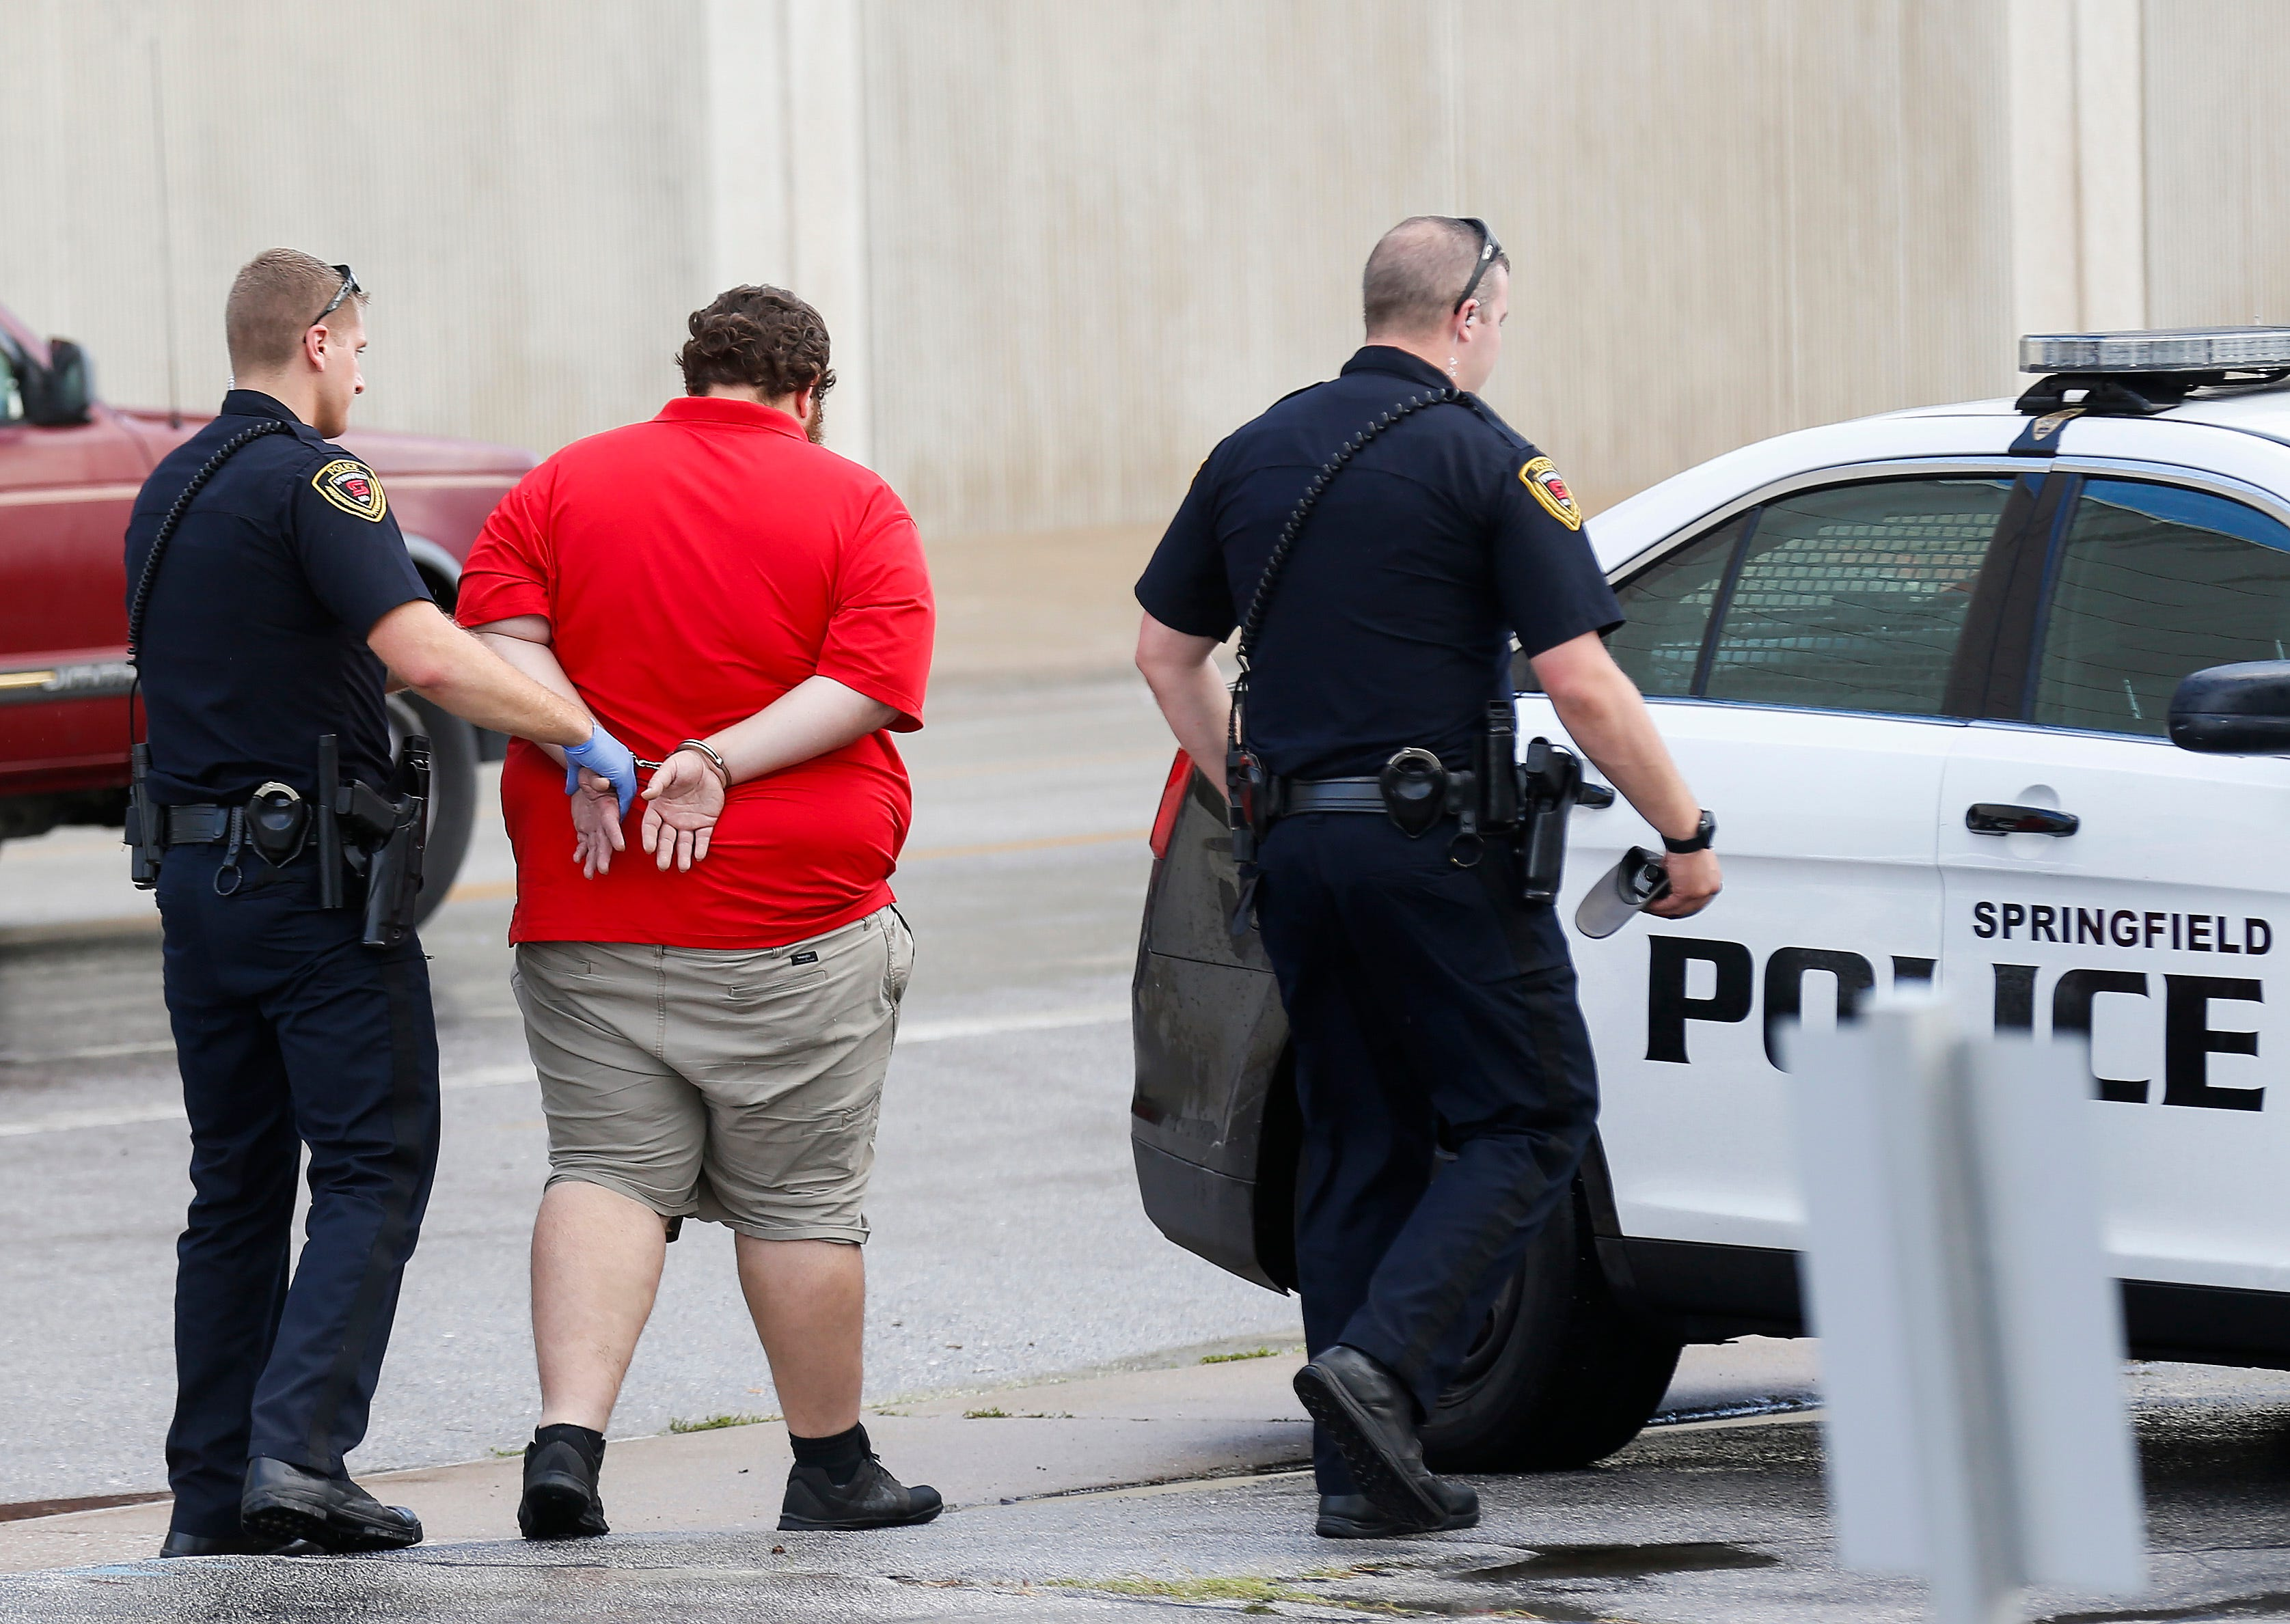 Police officers take a suspect in an apparent road rage related shooting into custody on Thursday, Sept. 6, 2018. The shooting occurred near Division Street and West Bypass, but the victim followed the suspect to Boonville Avenue near the Greene County Jail, where the police took the suspect into custody.